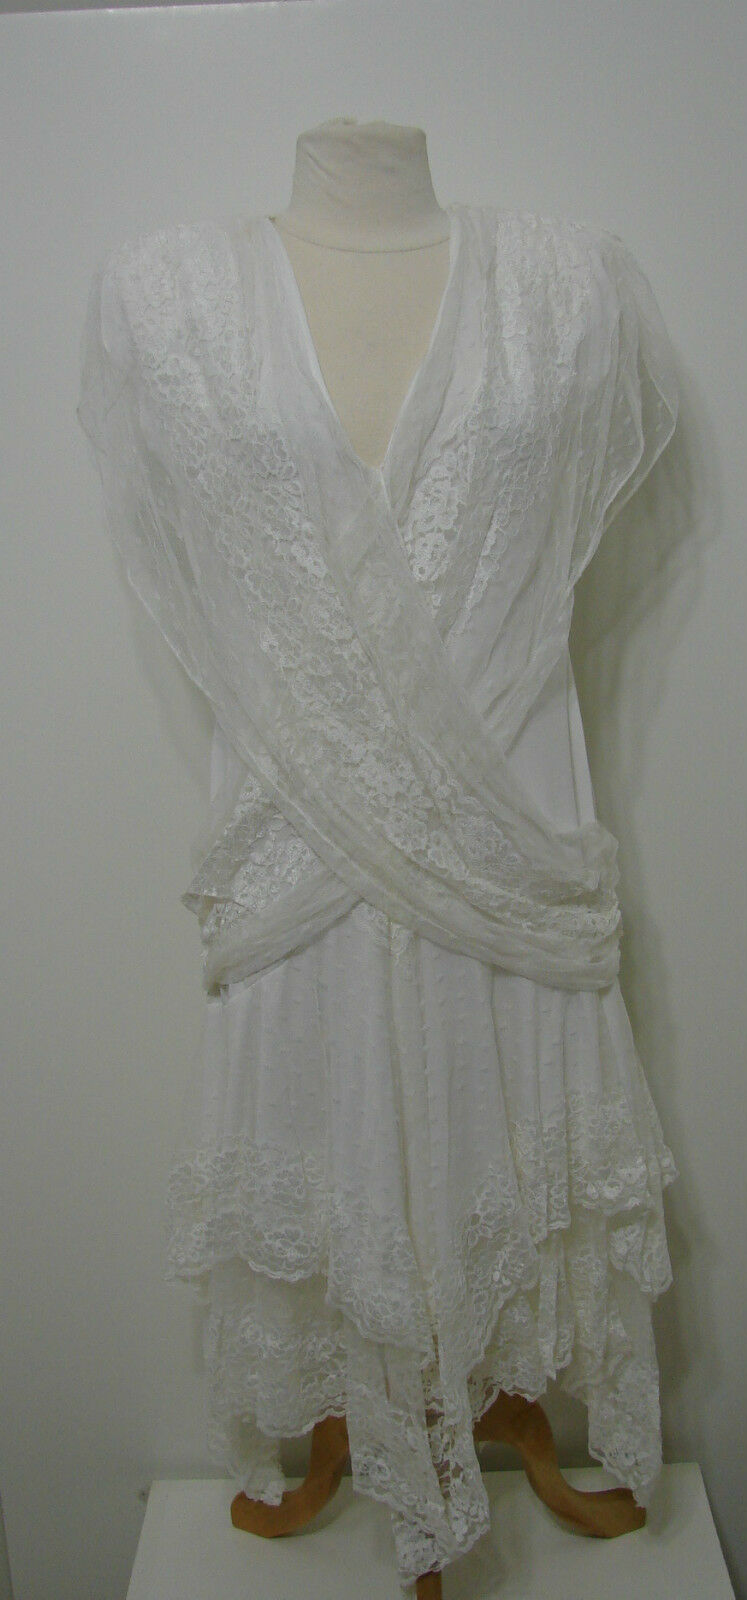 Vintage JC Penney White Layered Lace Draped Fishtail Dress NWOT 13 14 ILGWU